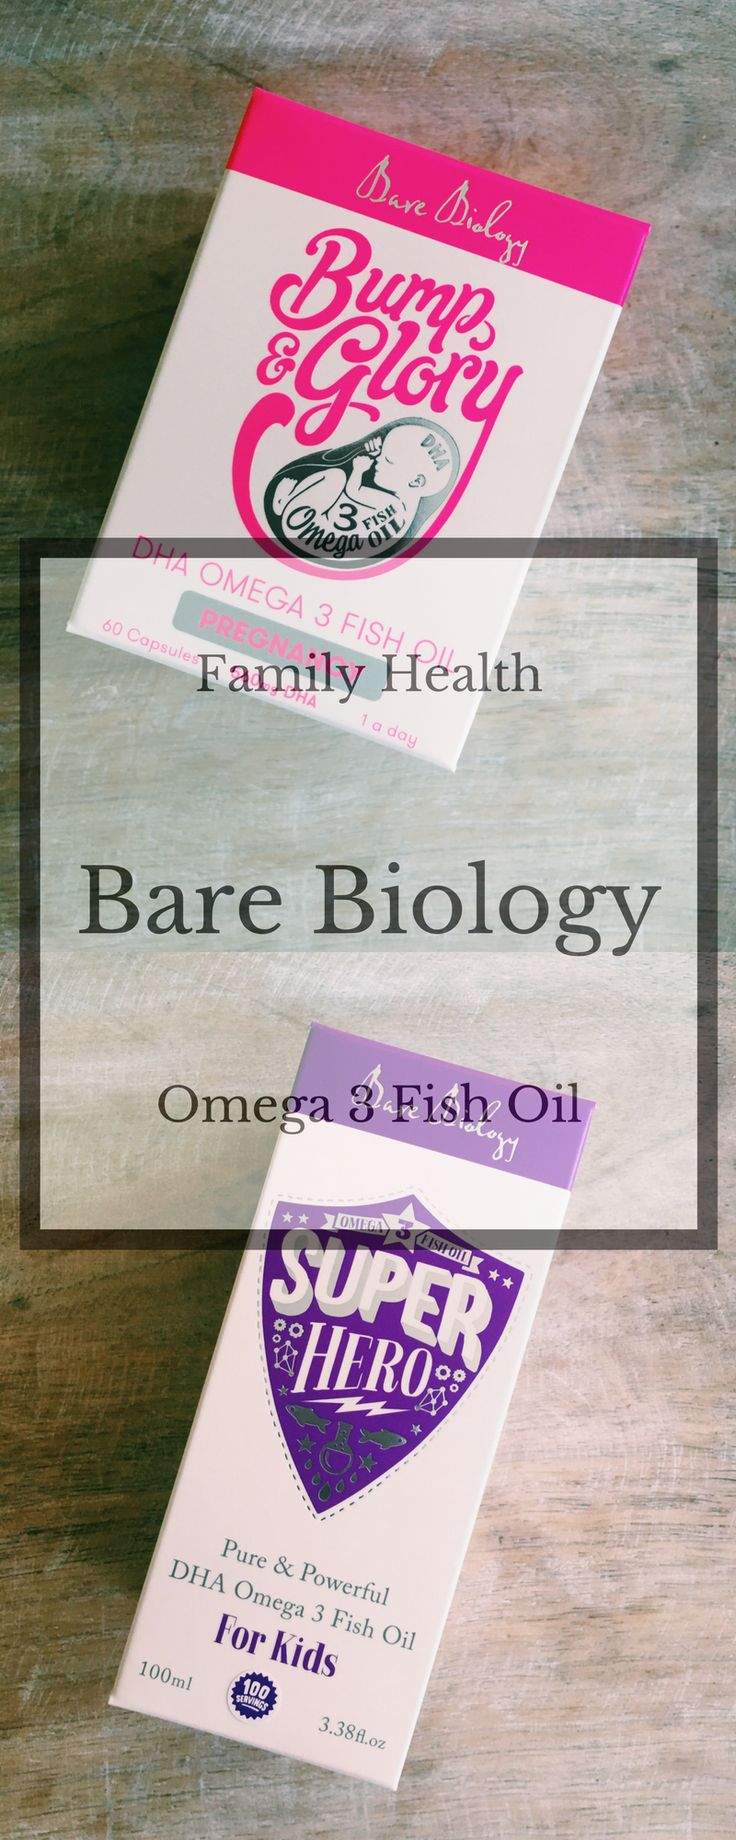 Omega 3 oils from Bare Biology that are easy for children to take and perfect for whole family health.